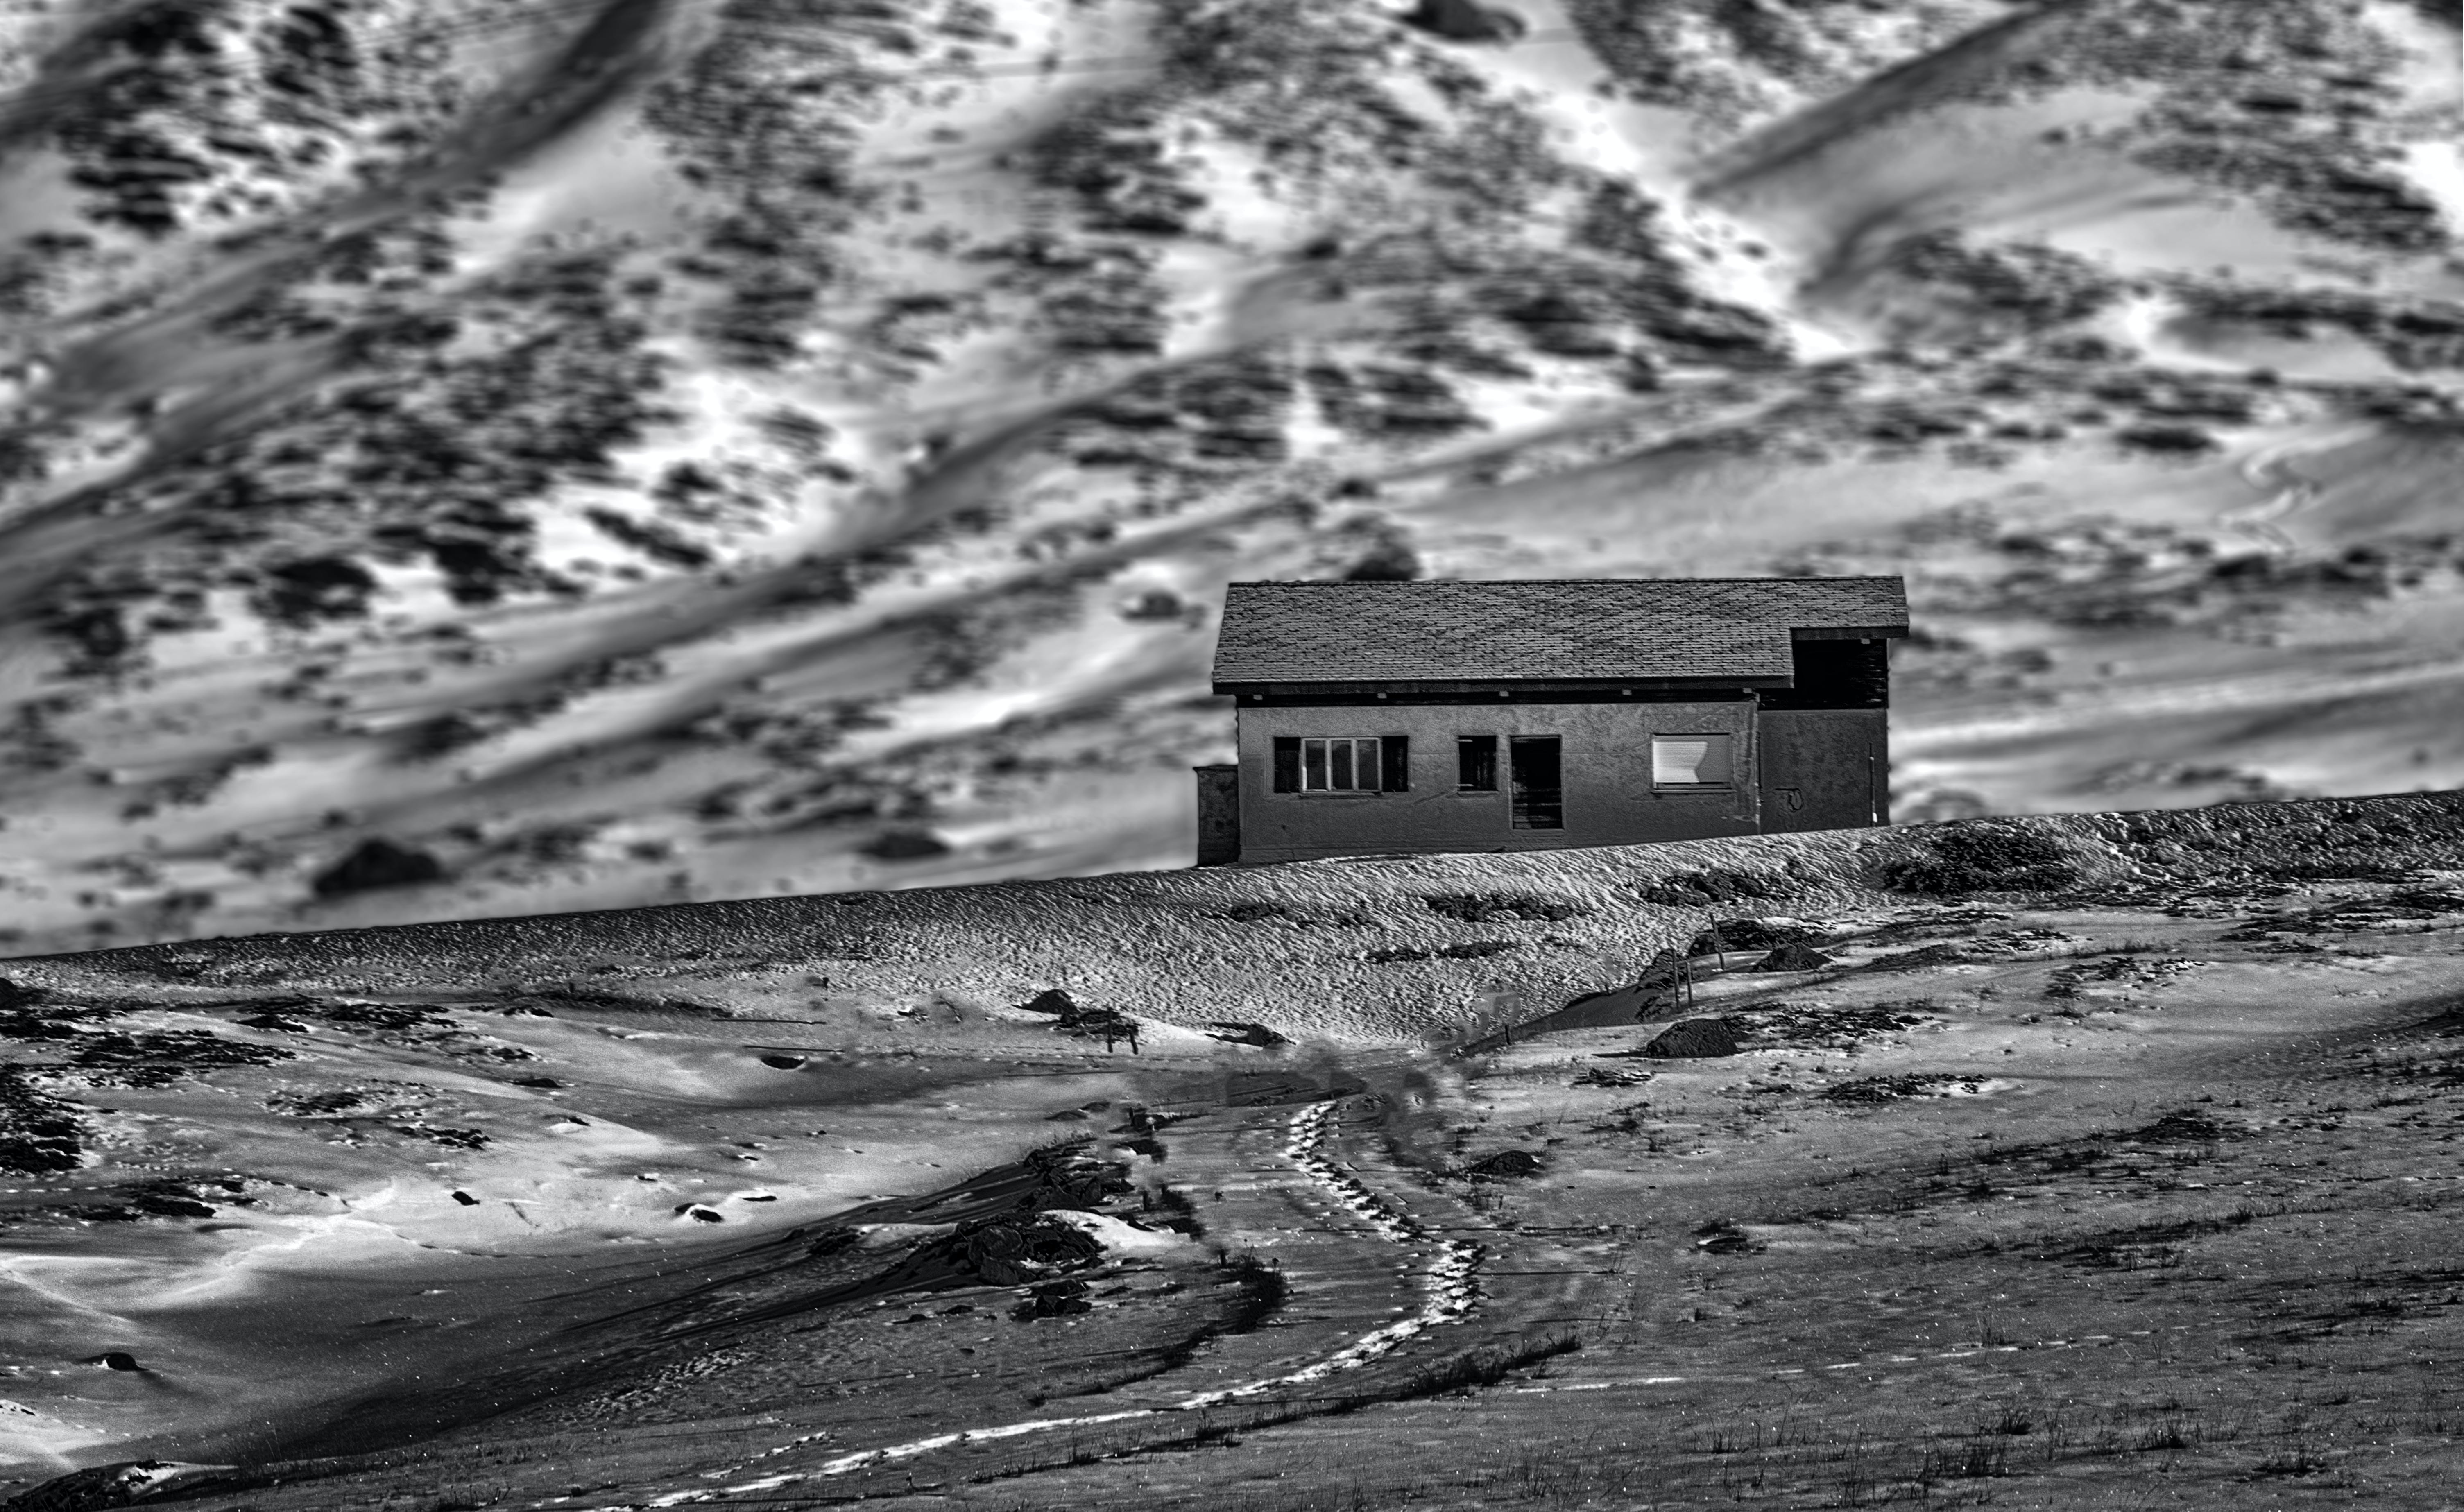 House on Rural Area Grayscale Photo